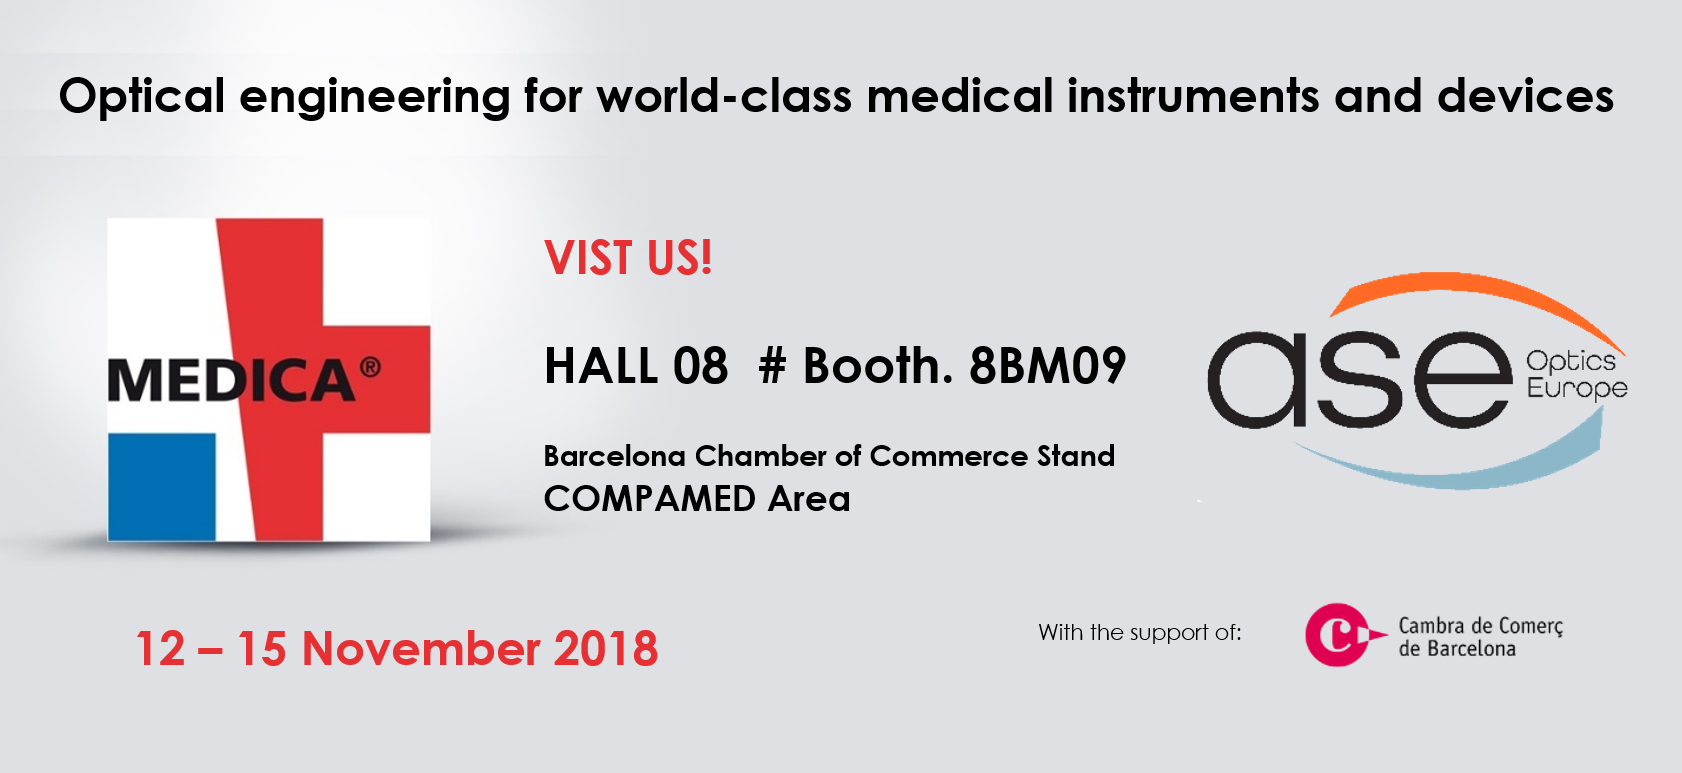 ASE Optics exhibits at MEDICA COMPAMED